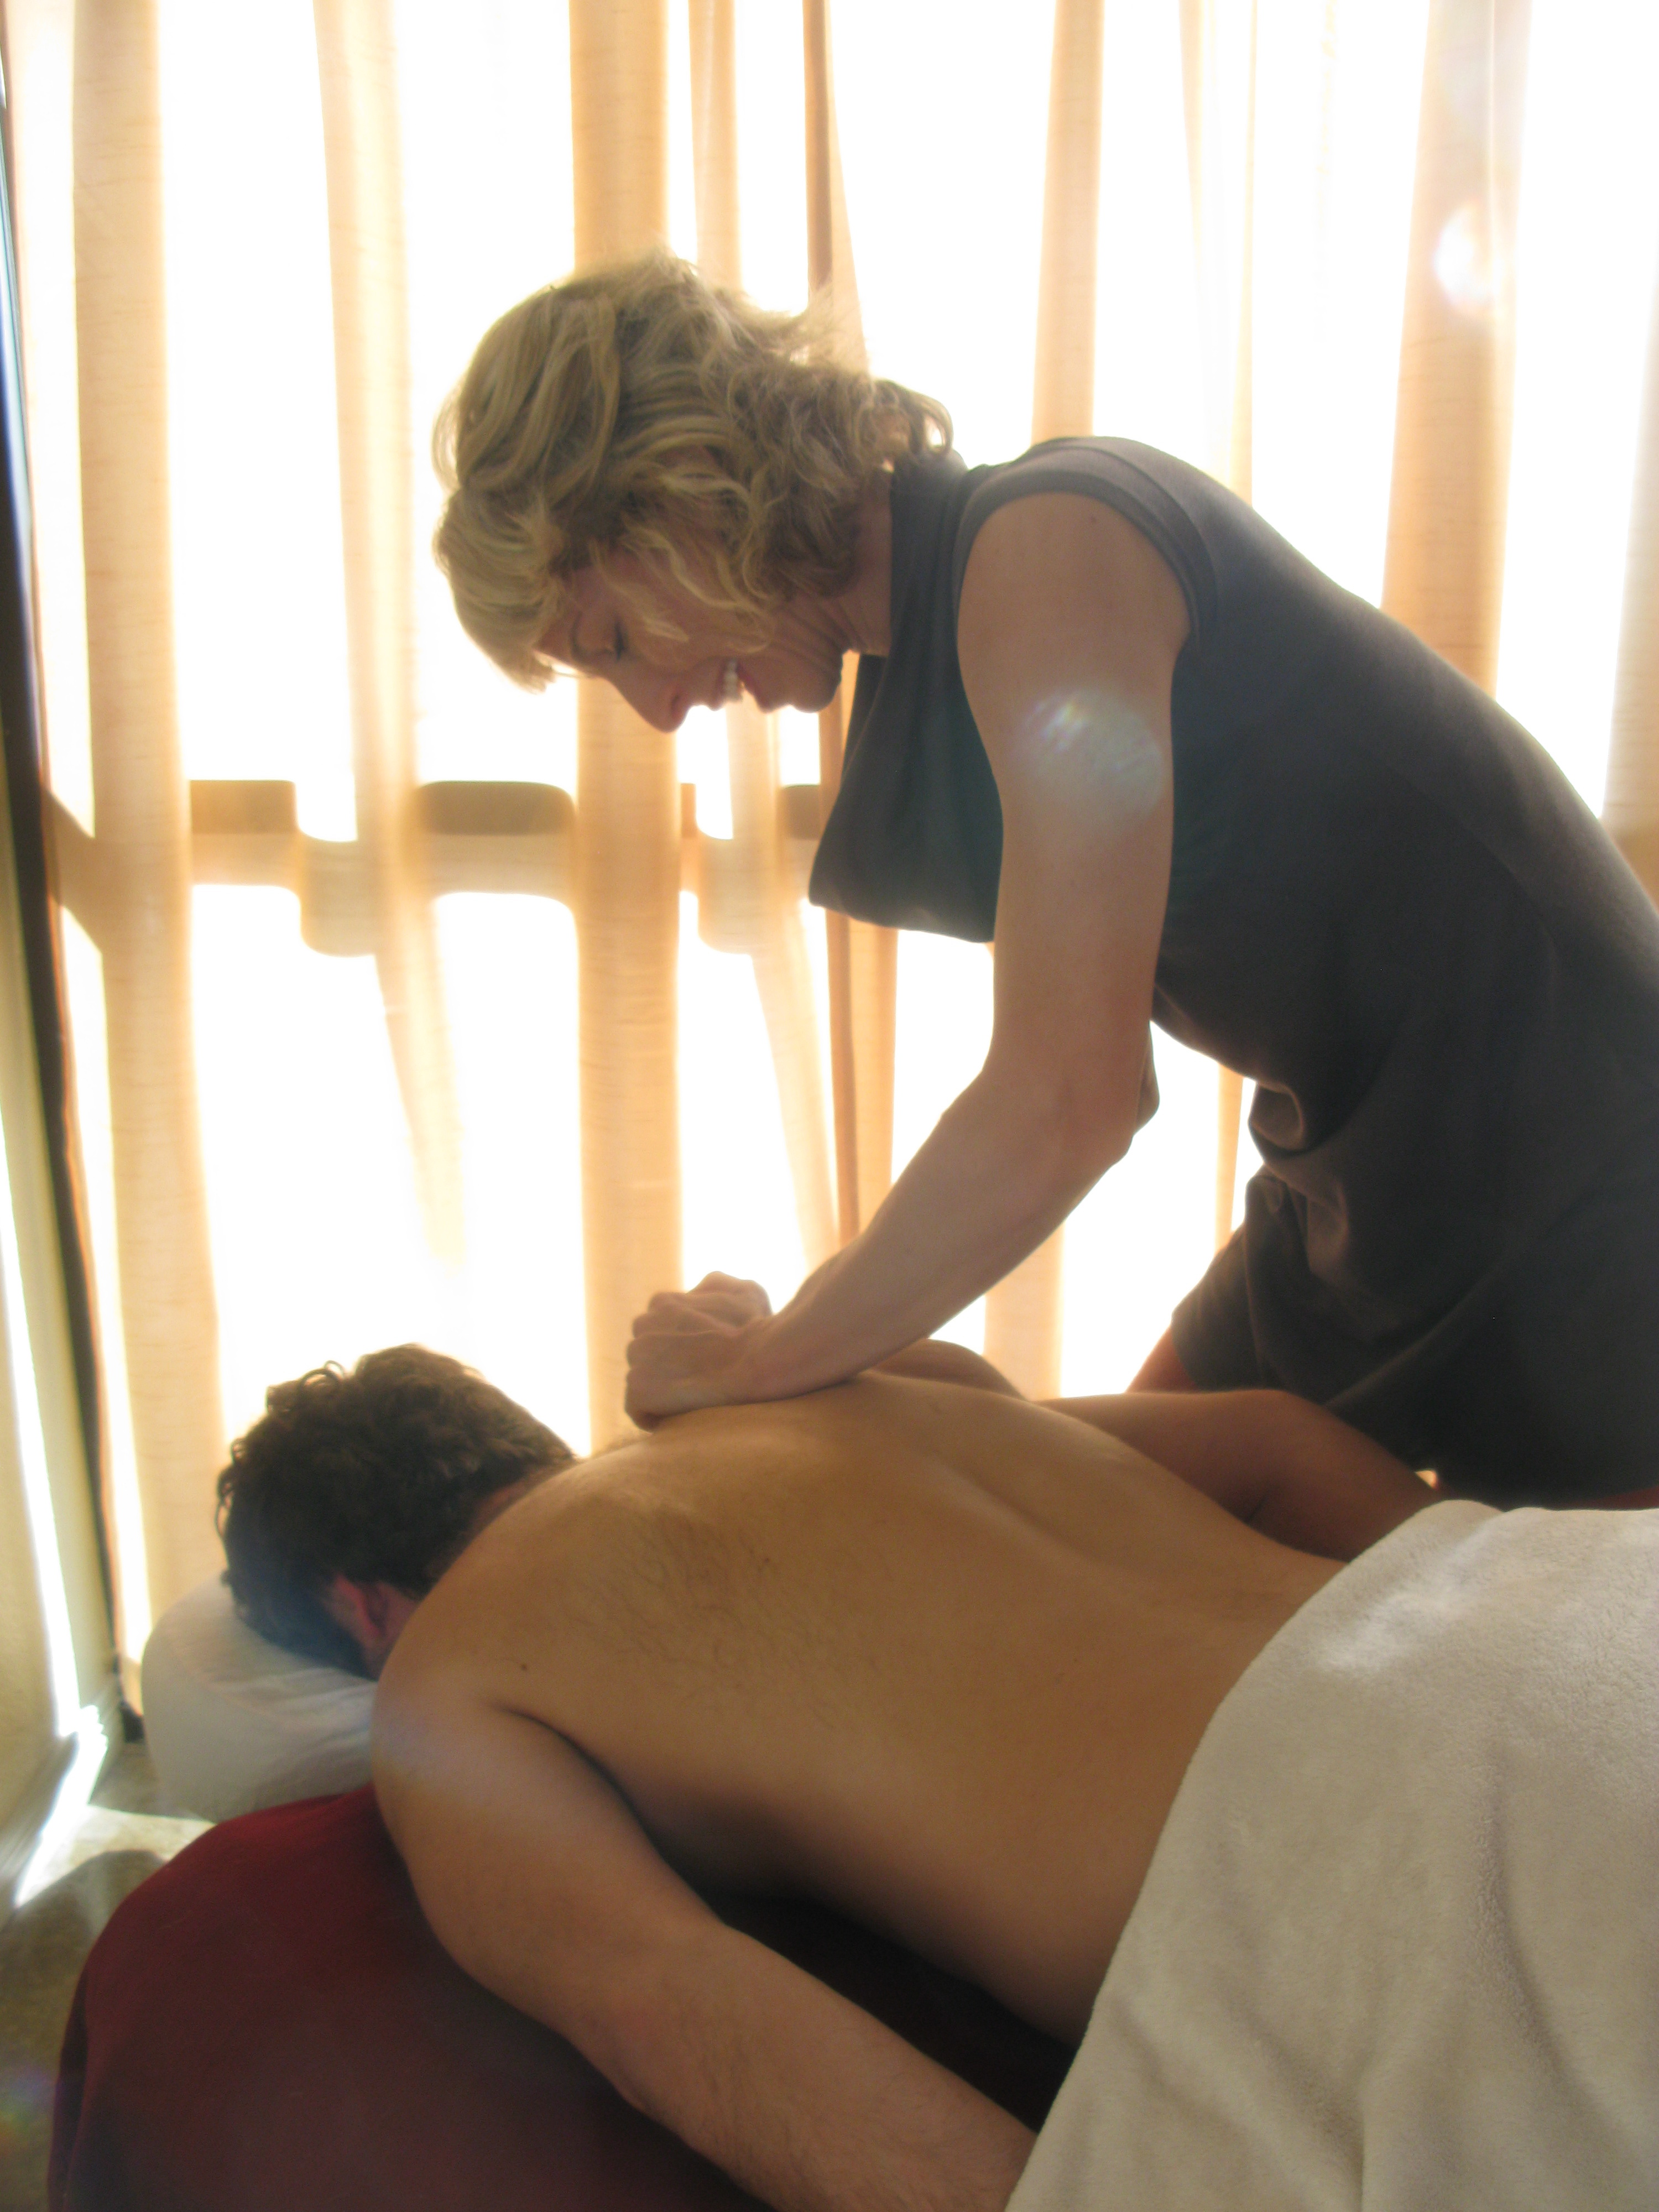 How can massage help me?